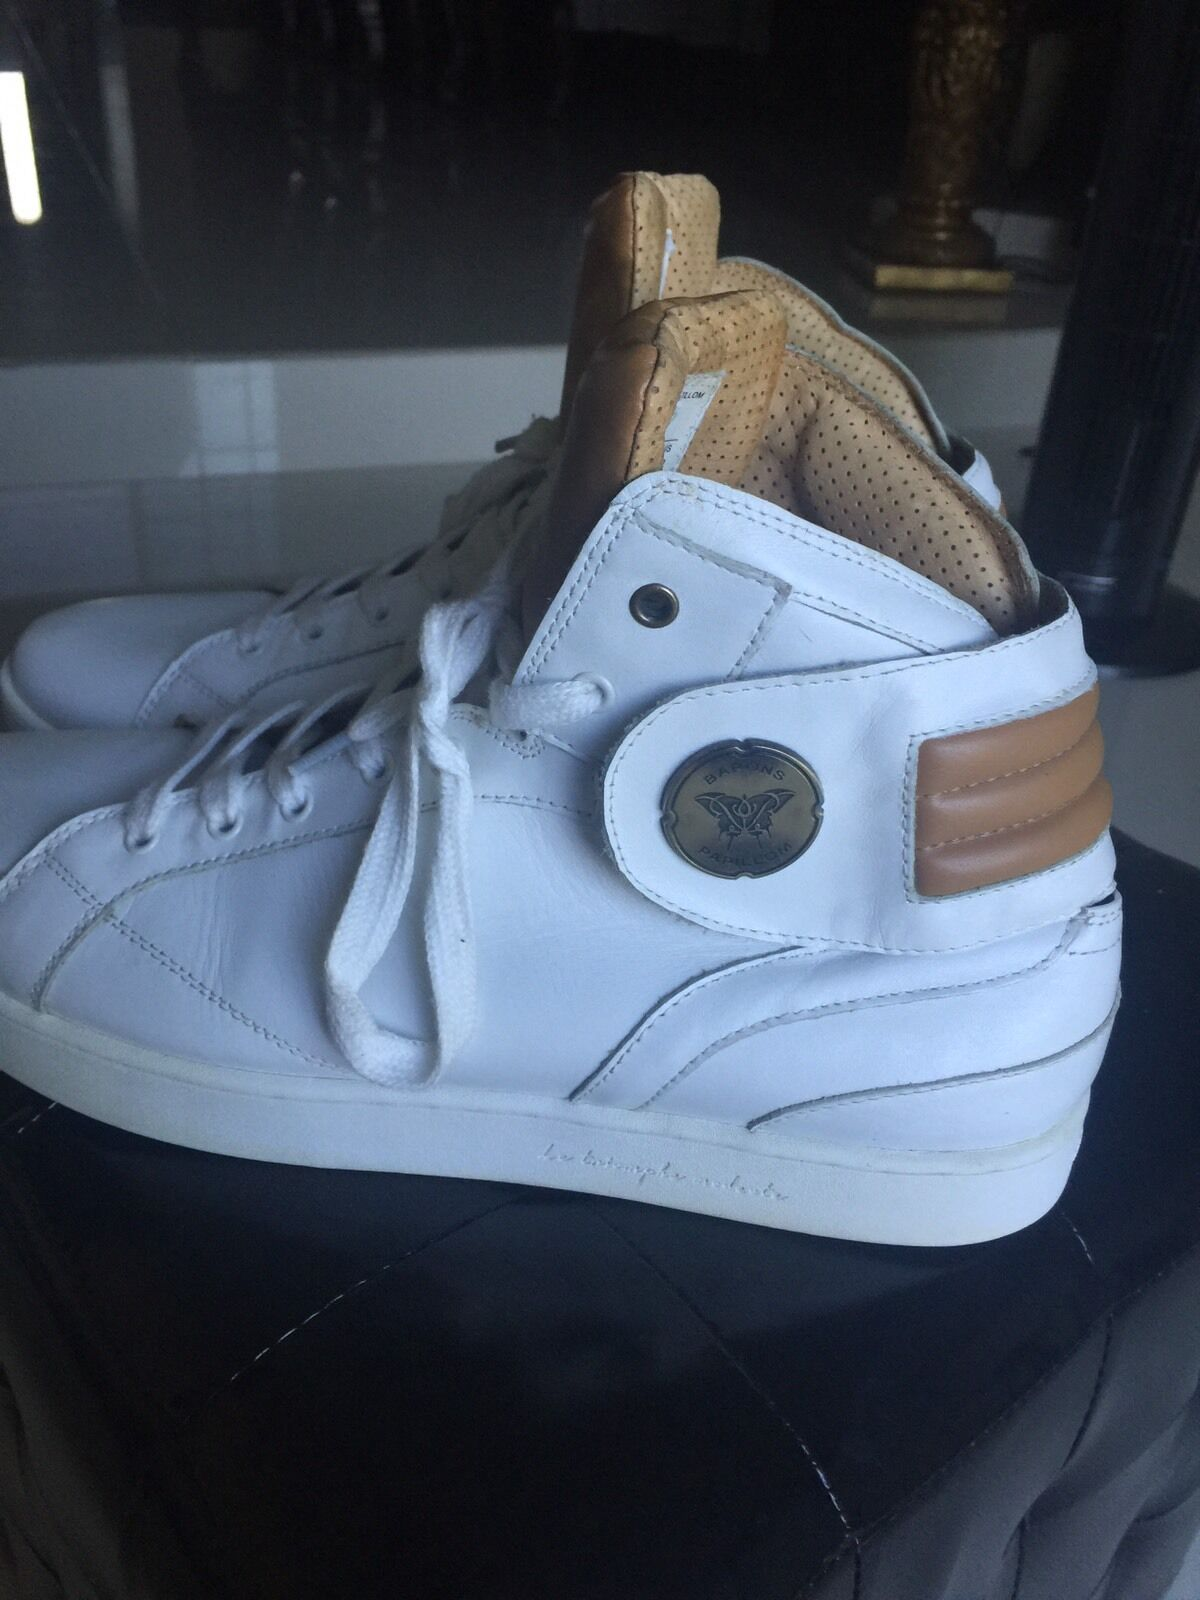 French Sneakers Barons  Papillom Barons Hi Cuir Blanc Unisex Size Euro 46 uS 12